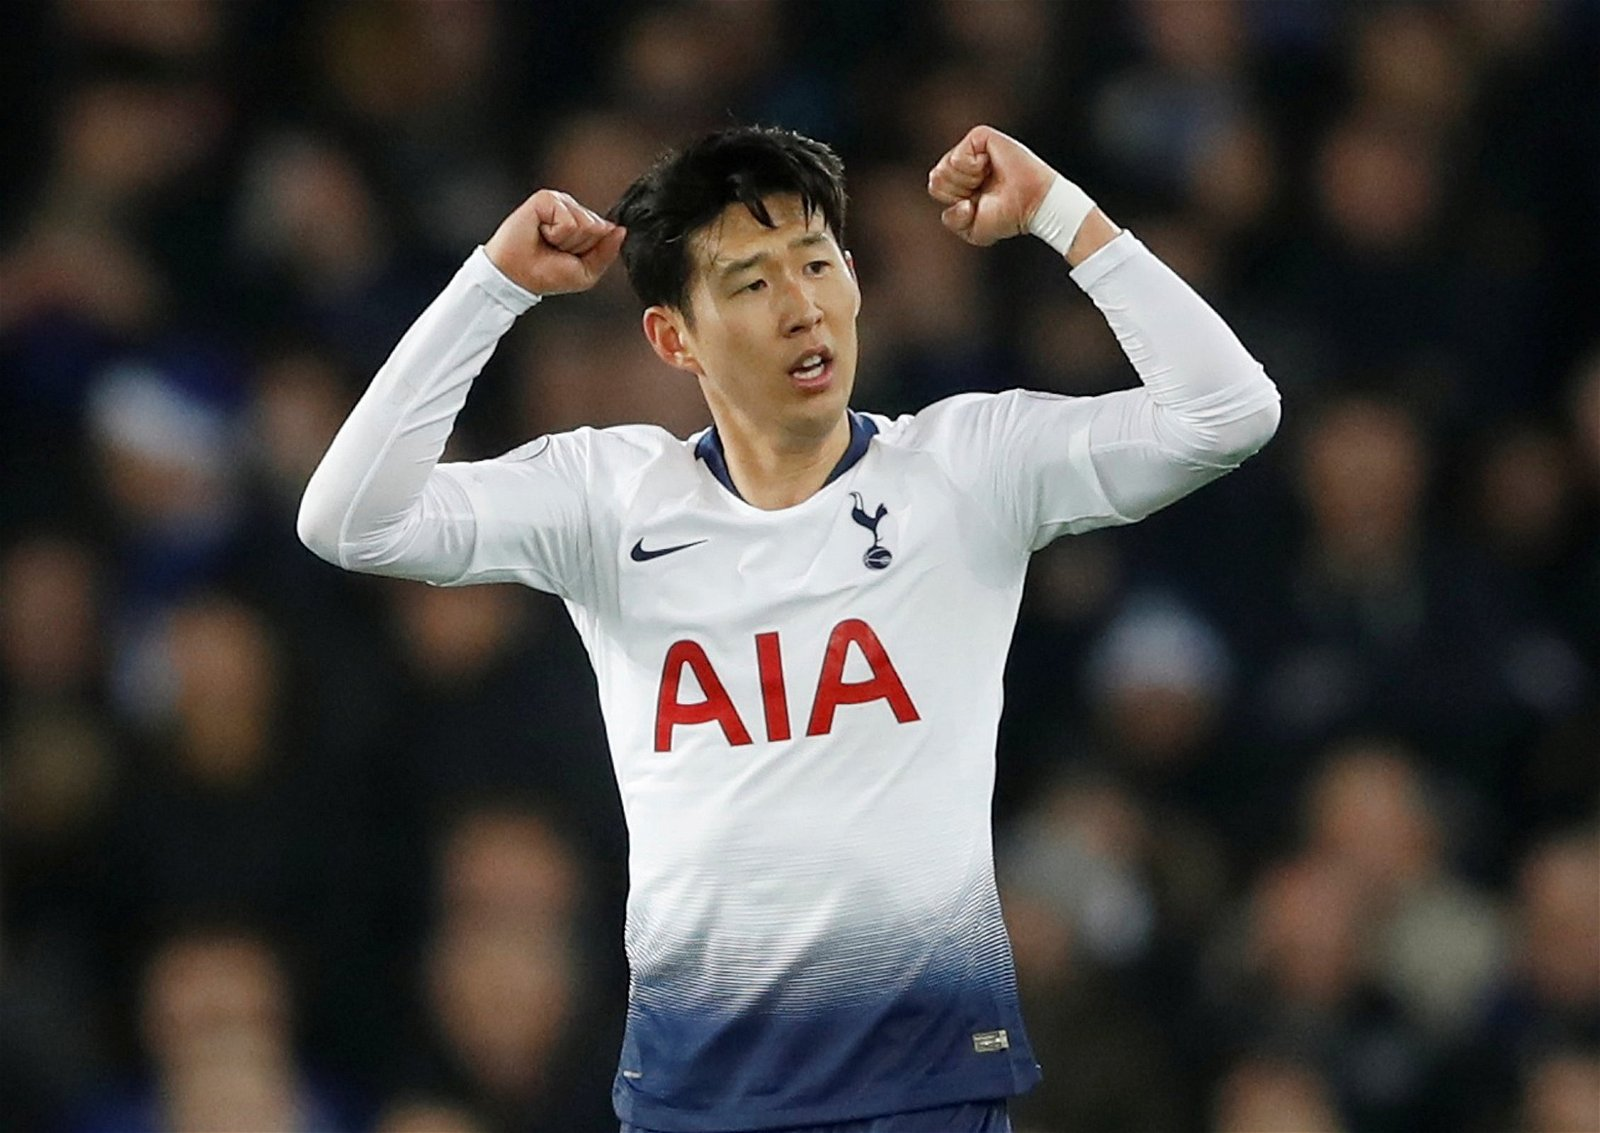 18 Heung min Son - Key man rested, Pochettino ends policy: Tottenham can ensure a top-four finish with key changes